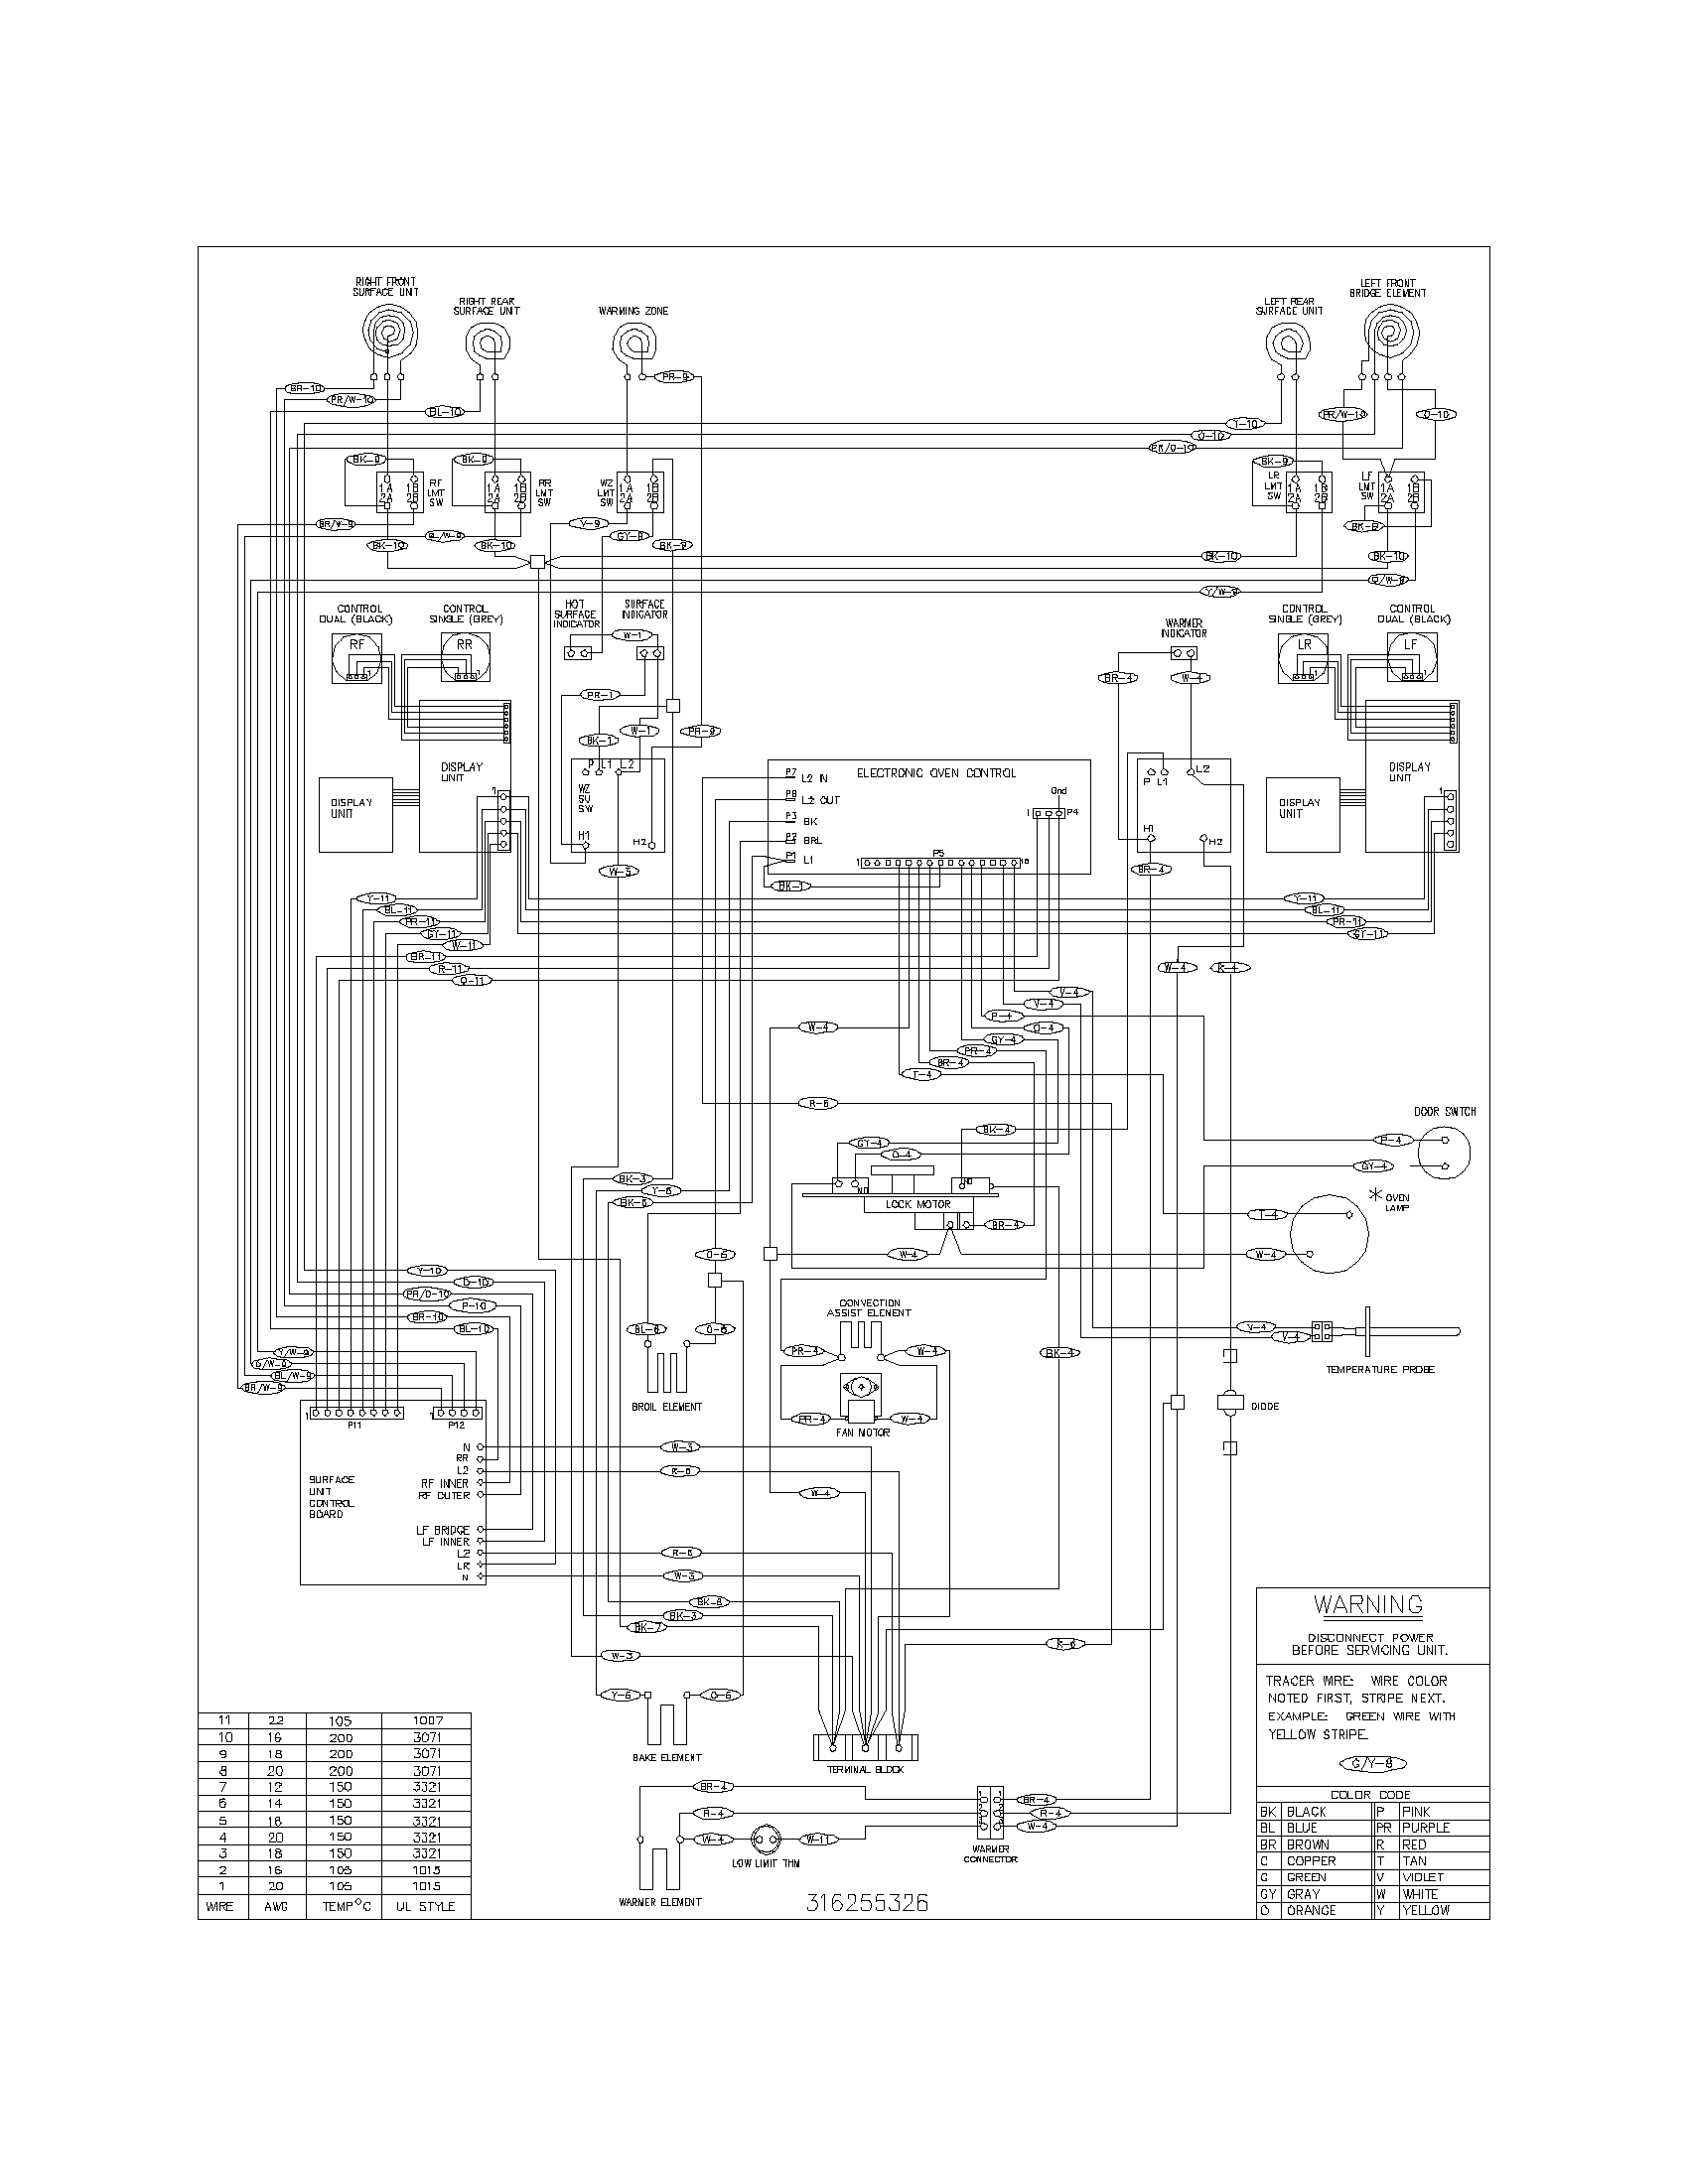 wiring diagram parts imperial range wiring diagrams wiring diagram shrutiradio imperial icv-1 wiring diagram at n-0.co